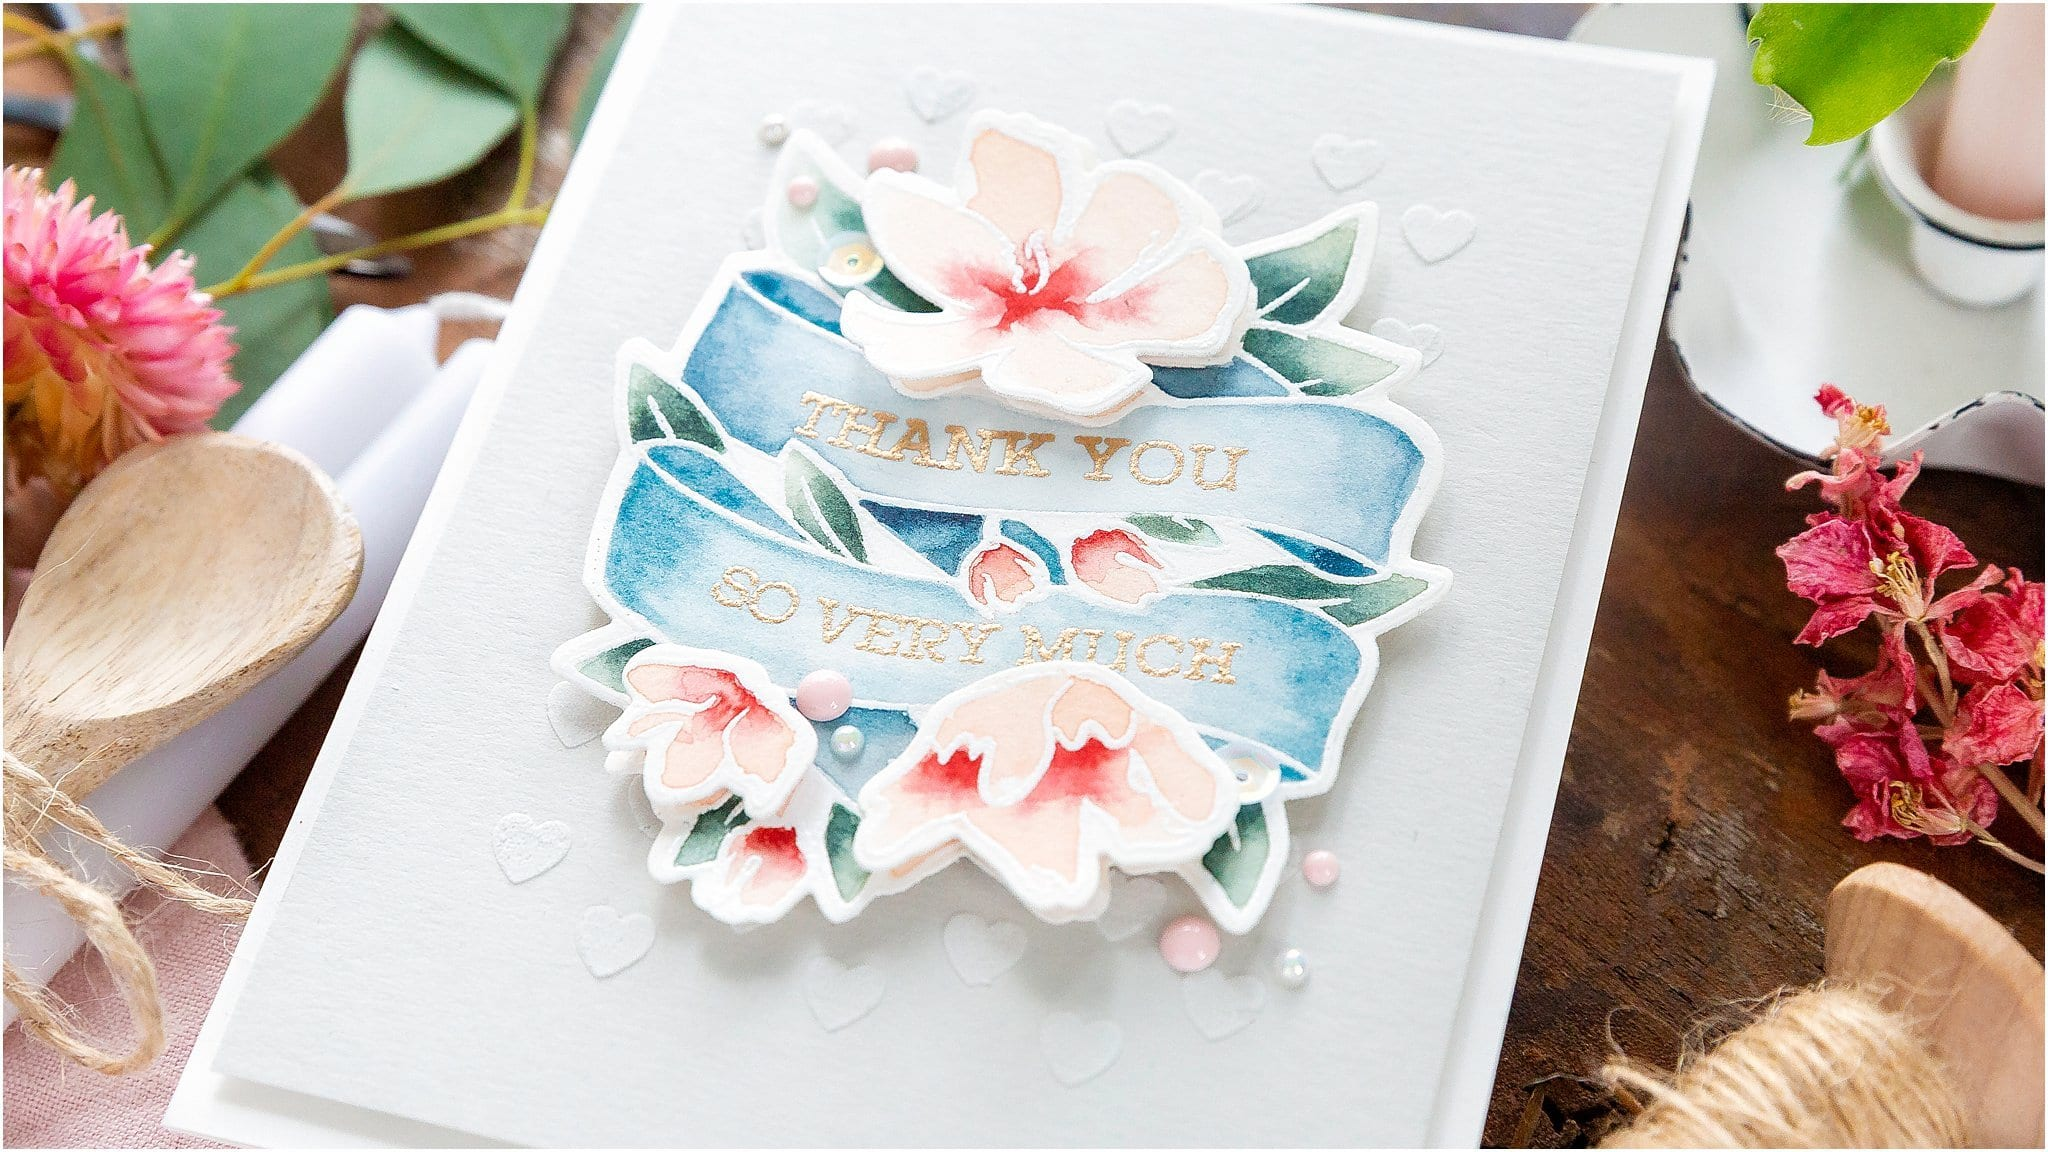 Video tutorial - watercoloured floral banner handmade card by Debby Hughes using supplies from Simon Says Stamp #handmadecards #cardmaking #cardmakingideas #cardmakingtechniques  #cardmakingtutorials #handmadecardideas #simonsaysstamp